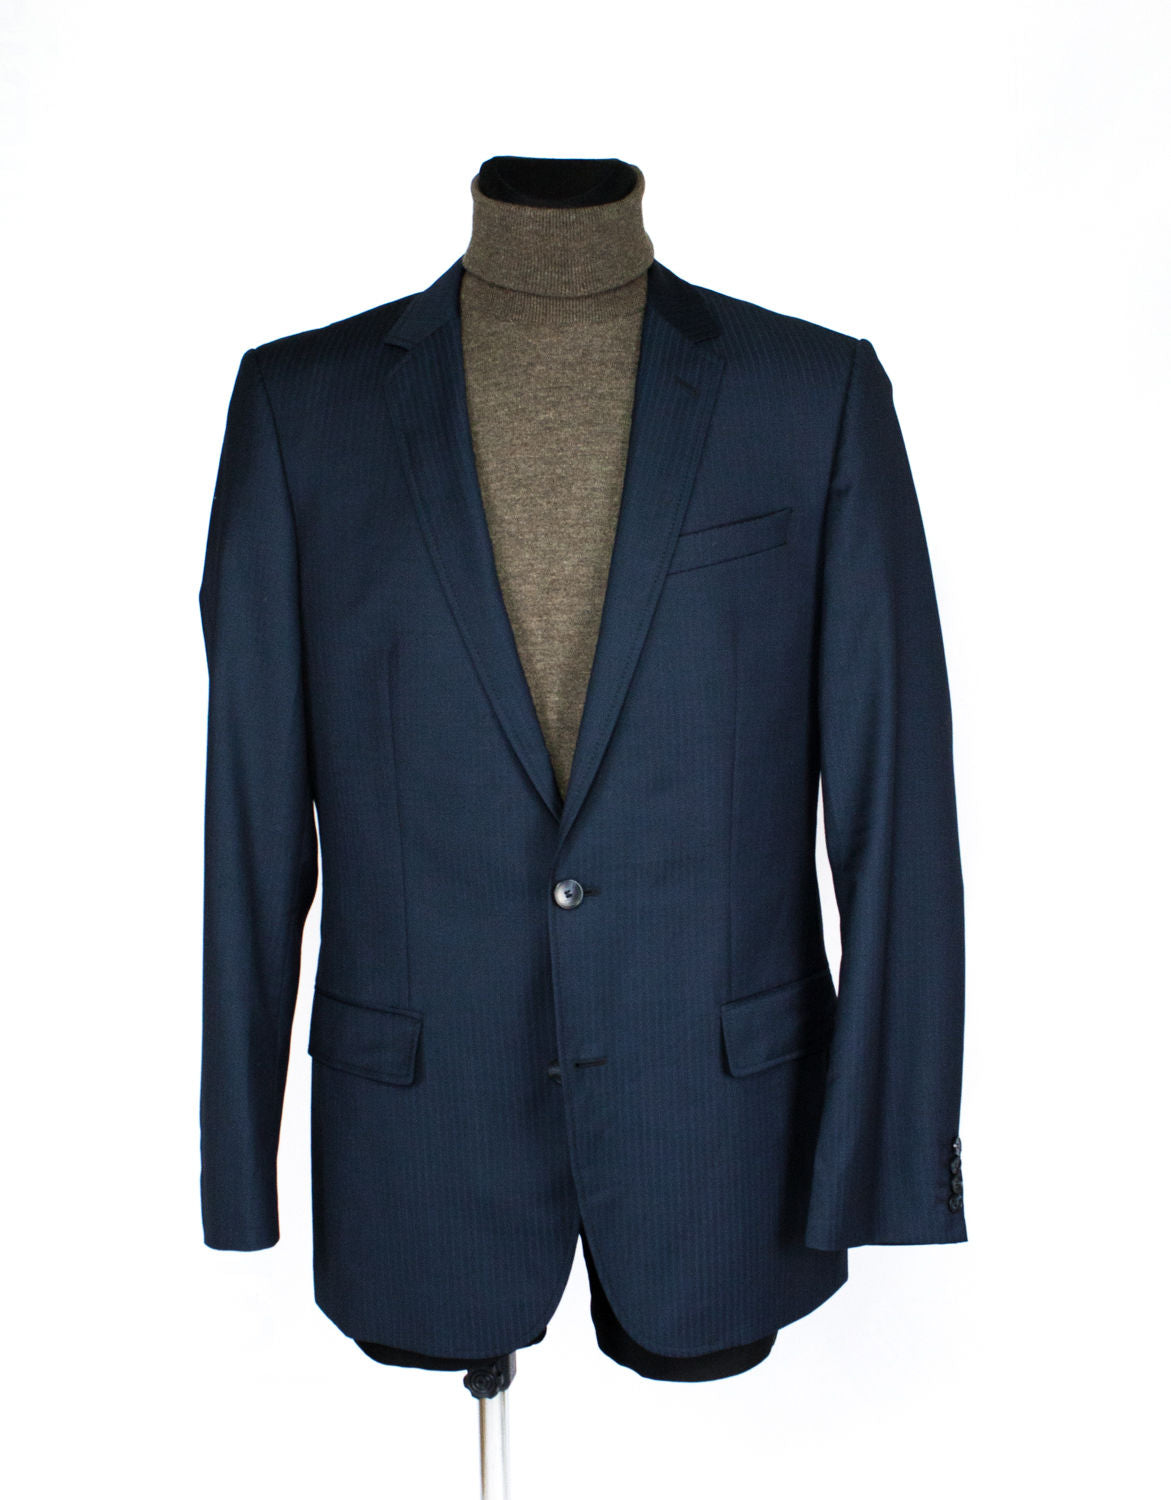 HUGO BOSS Red Label Blue Blazer, USA 40L/EUR 98 - secondfirst